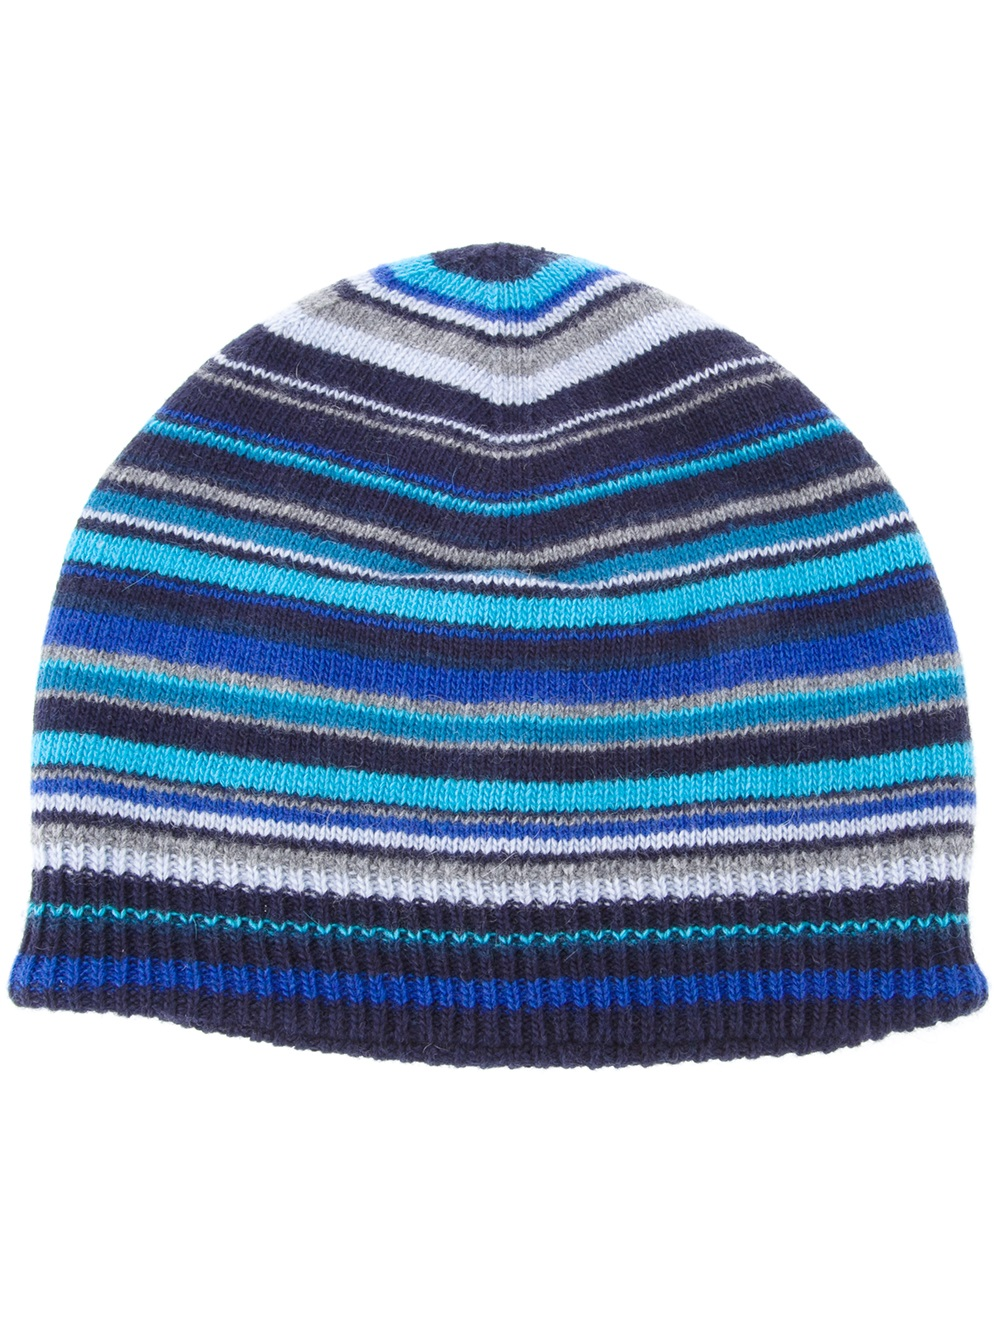 5f9be128945fb Paul Smith Striped Beanie Hat in Blue for Men - Lyst